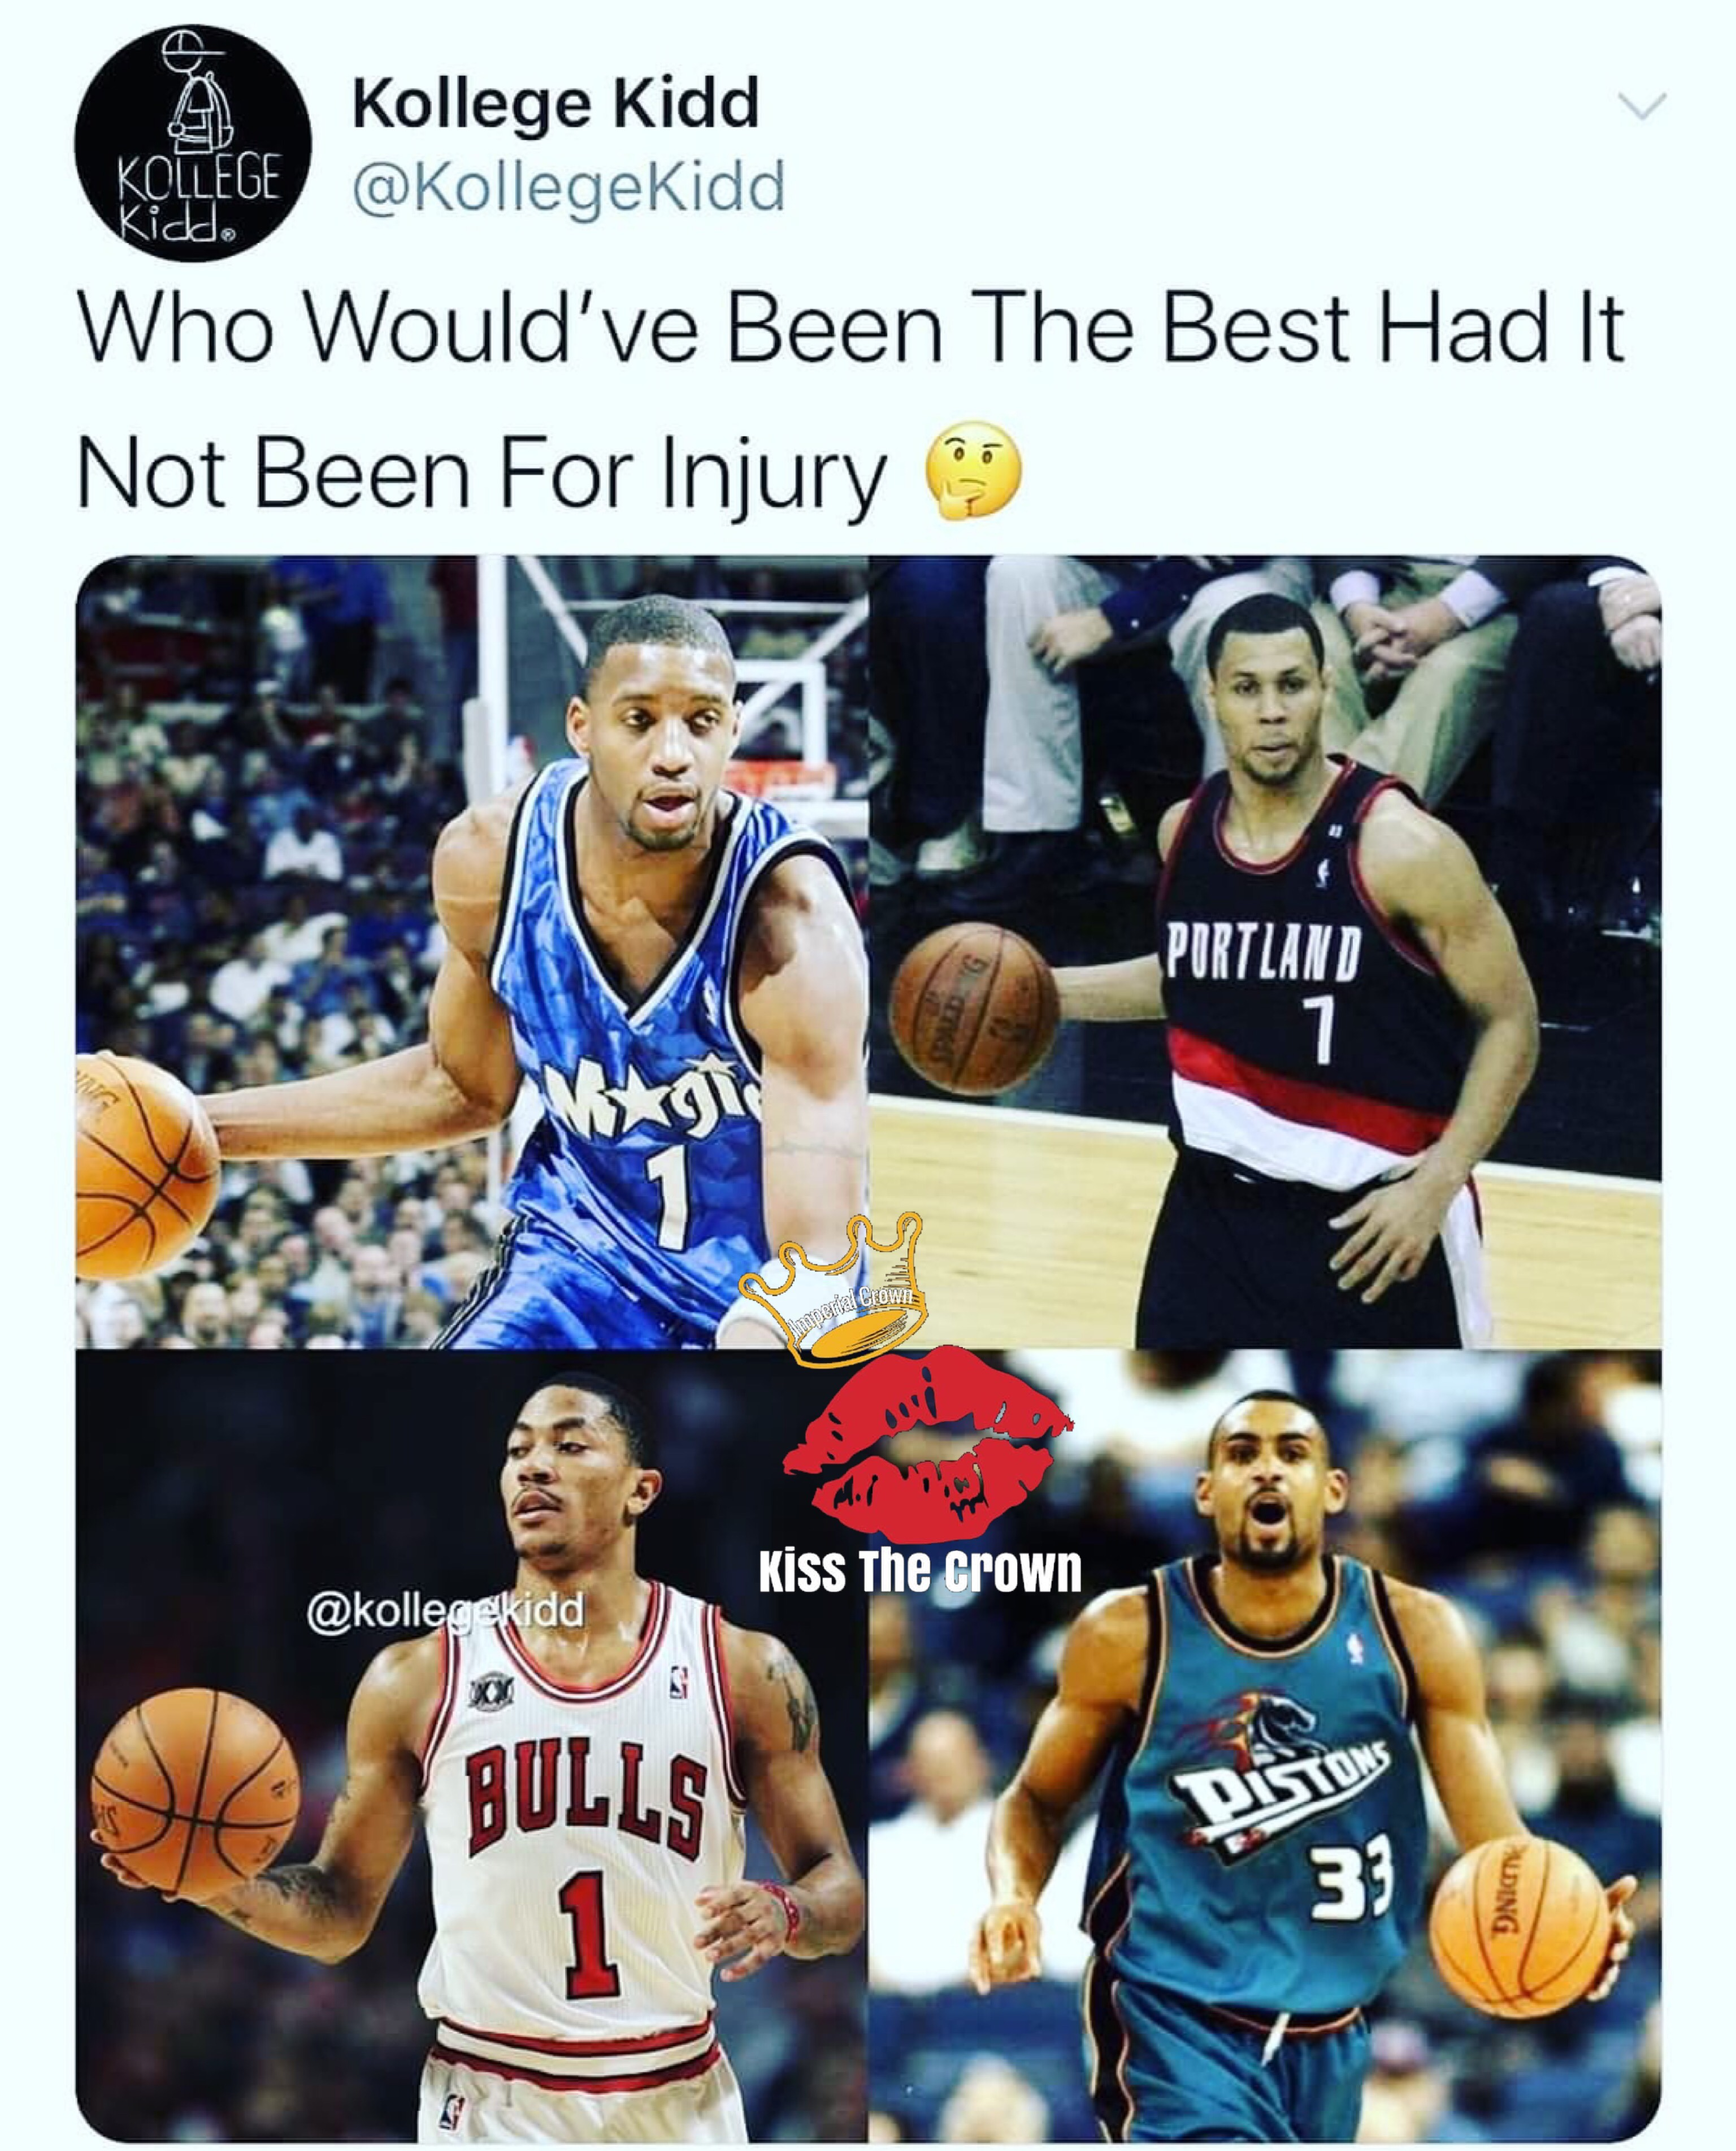 Who would've been the best had it not been for injury